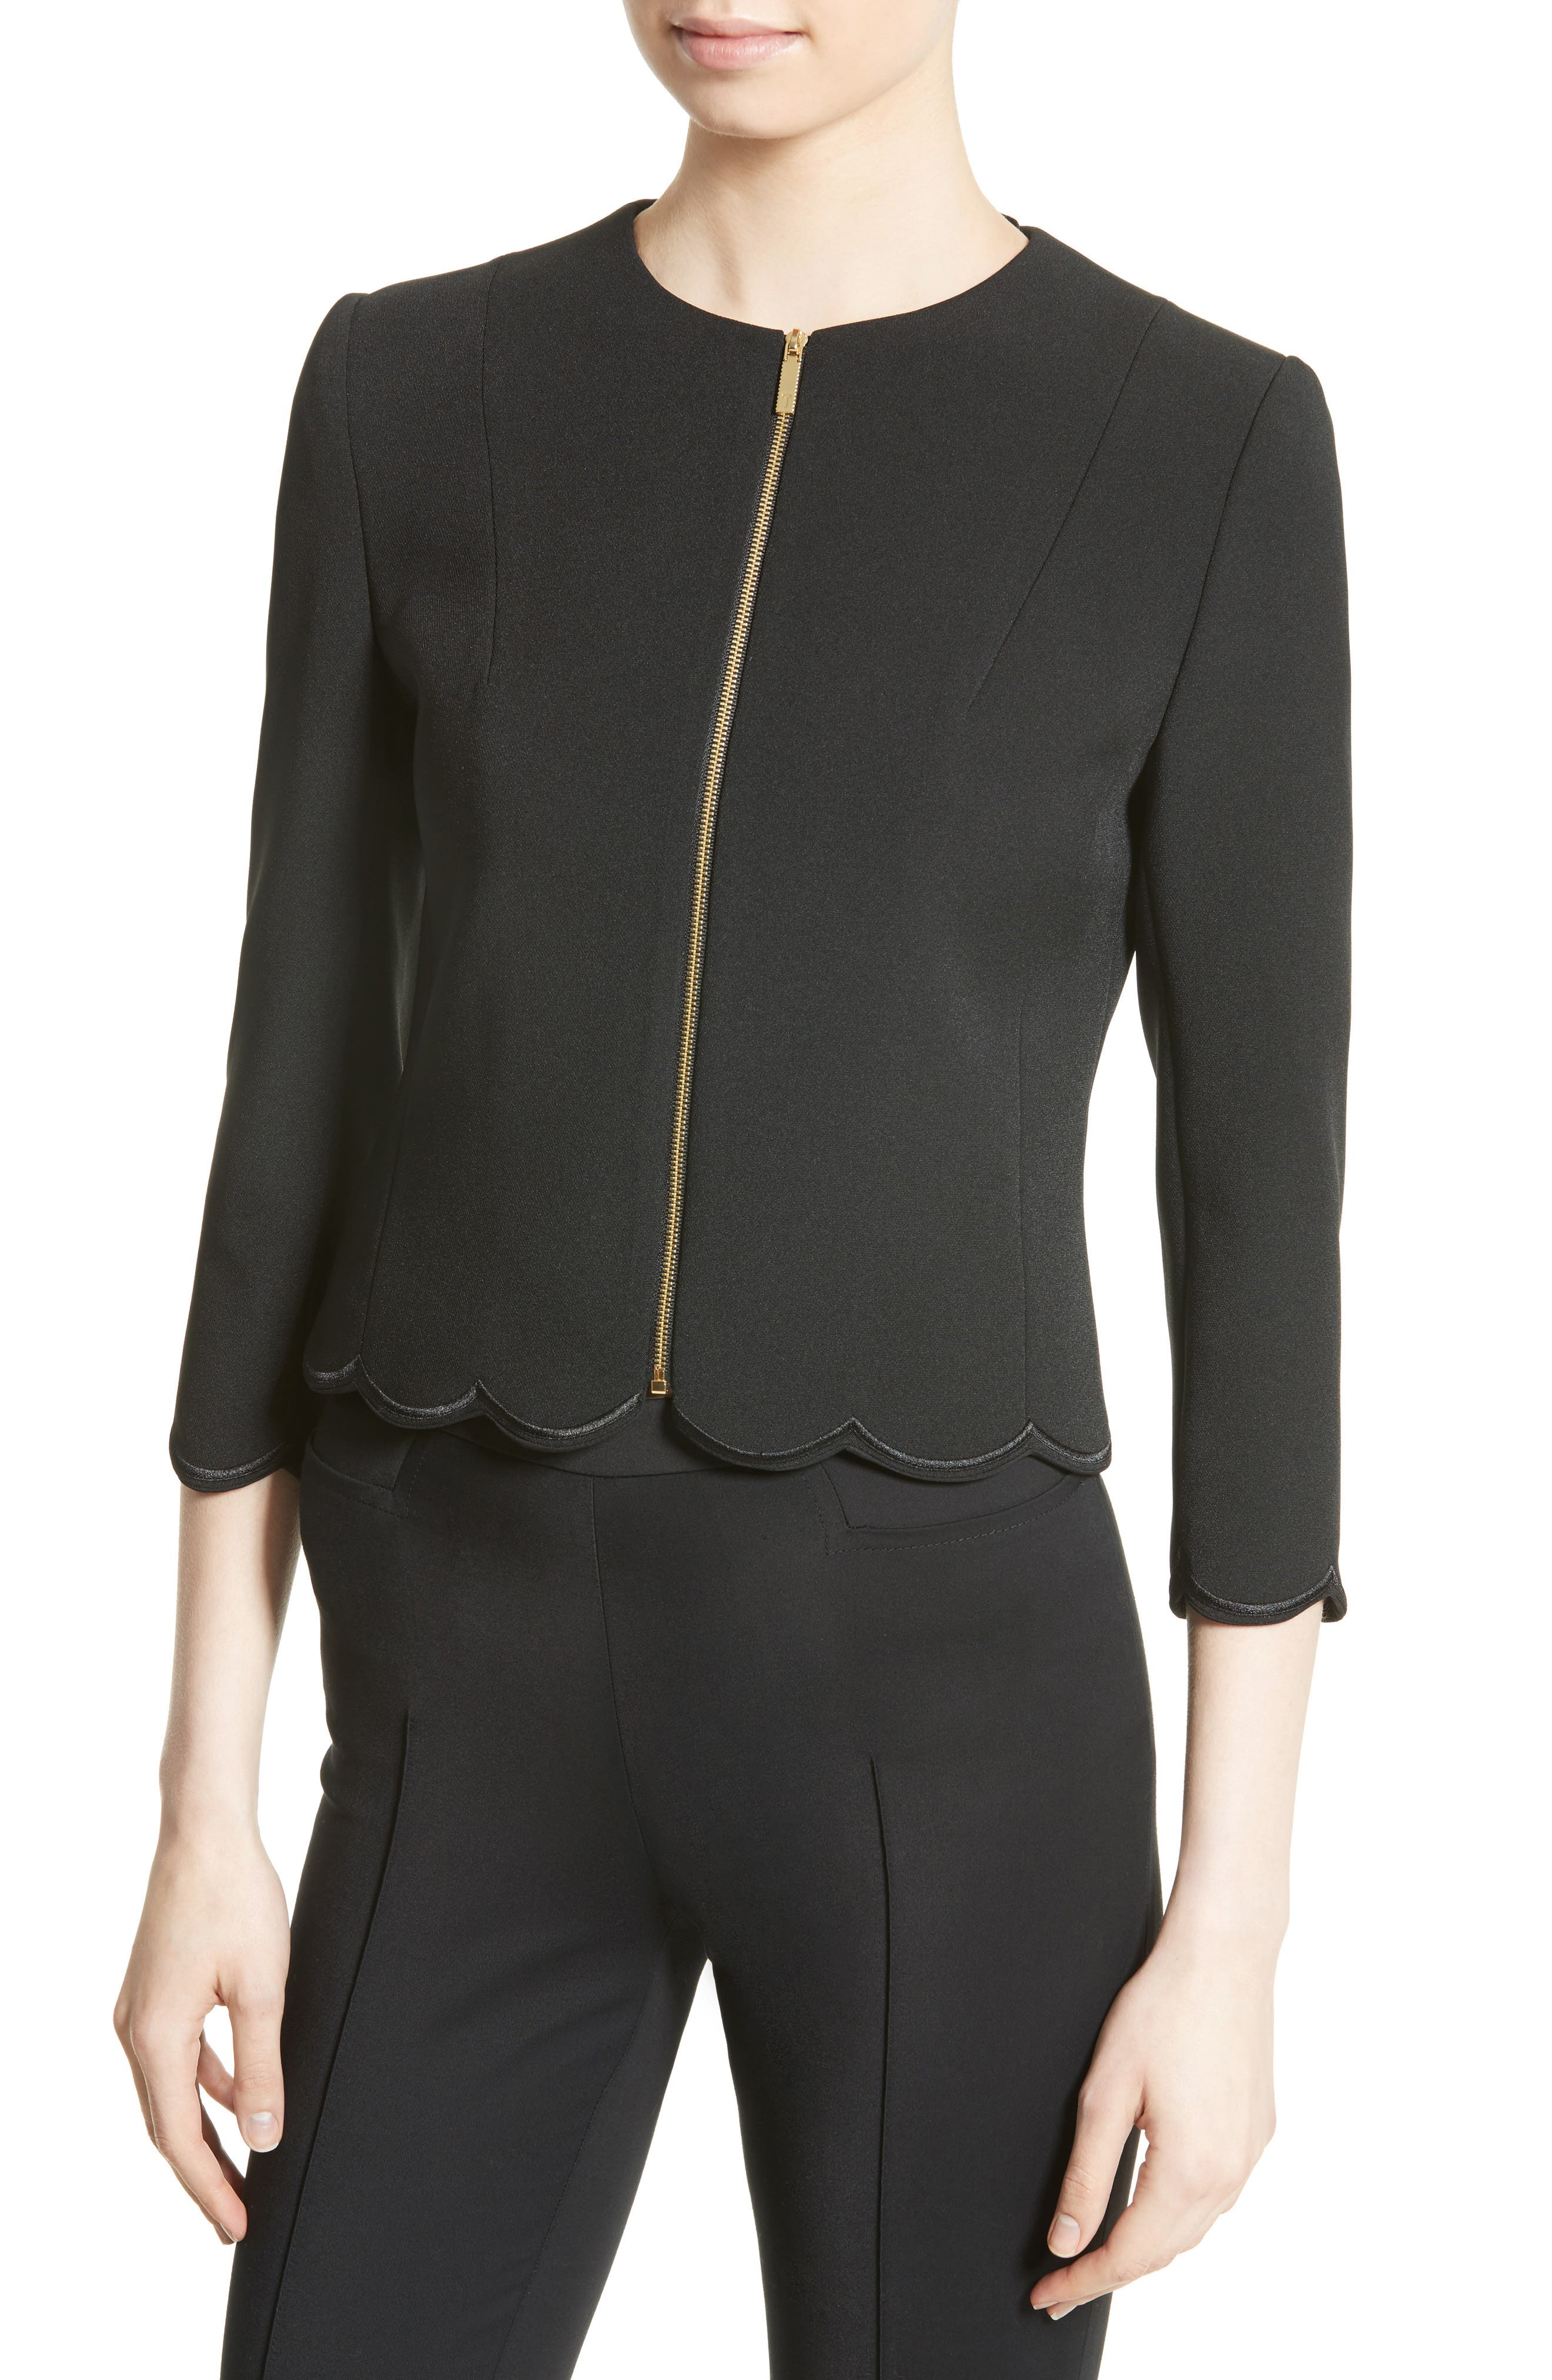 Heraly Crop Jacket,                             Alternate thumbnail 4, color,                             001